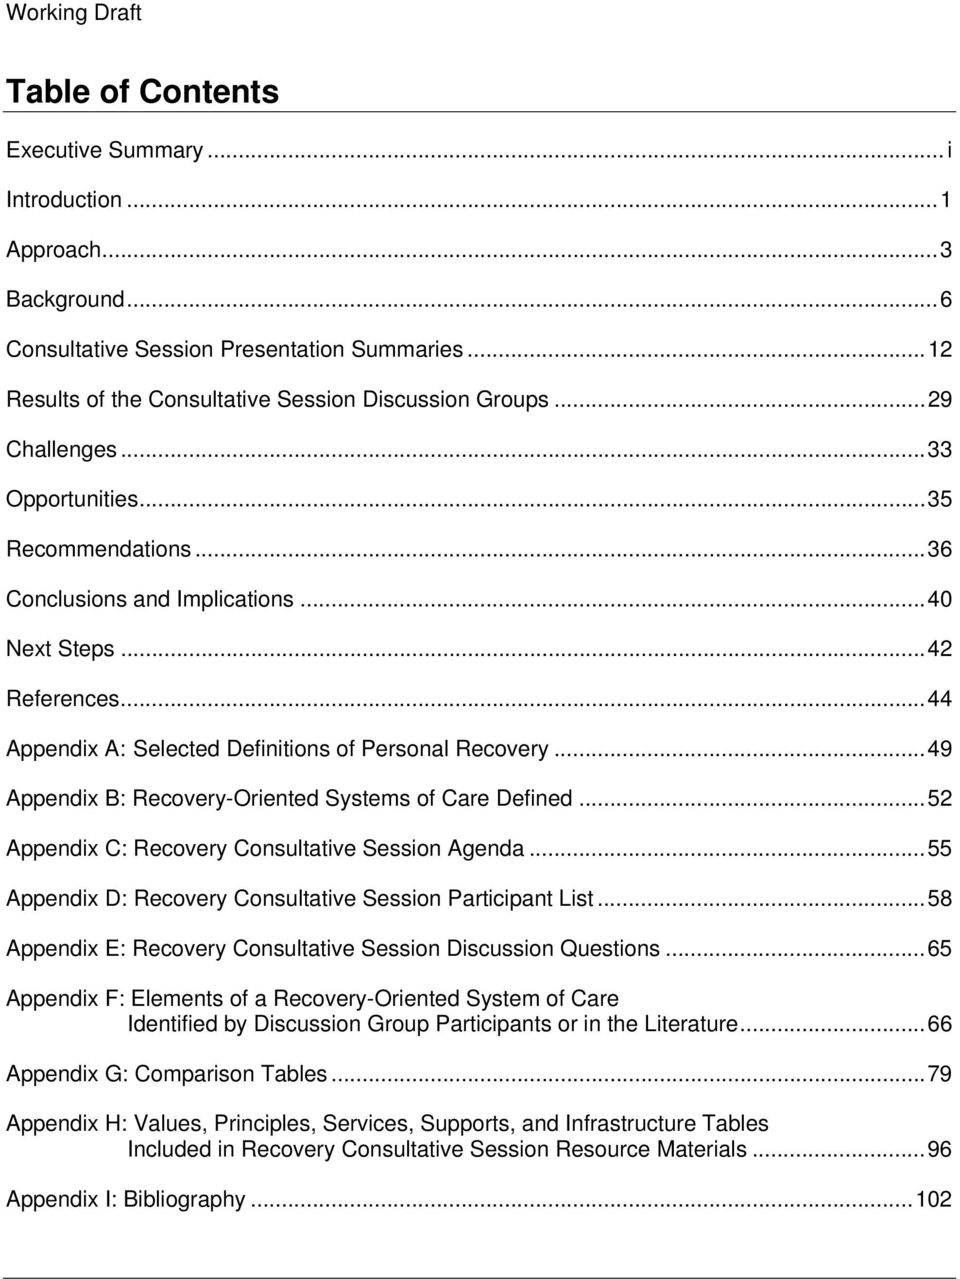 ..49 Appendix B: Recovery-Oriented Systems of Care Defined...52 Appendix C: Recovery Consultative Session Agenda...55 Appendix D: Recovery Consultative Session Participant List.